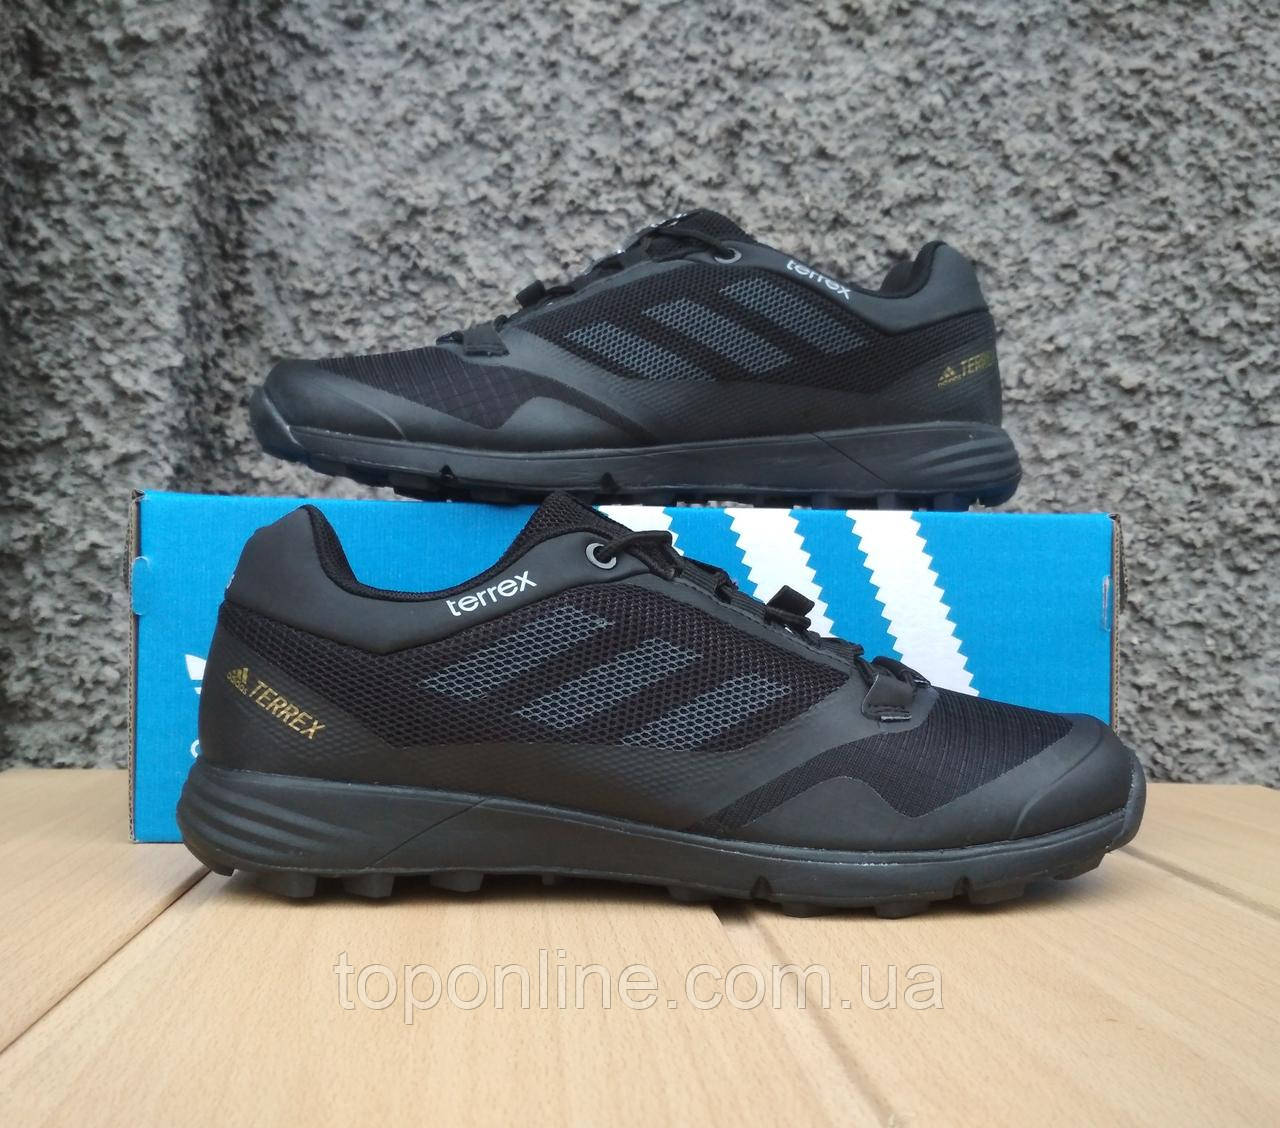 29bd1abbb8b2 Кроссовки Adidas Terrex Trailmaker 250 All Black — в Категории